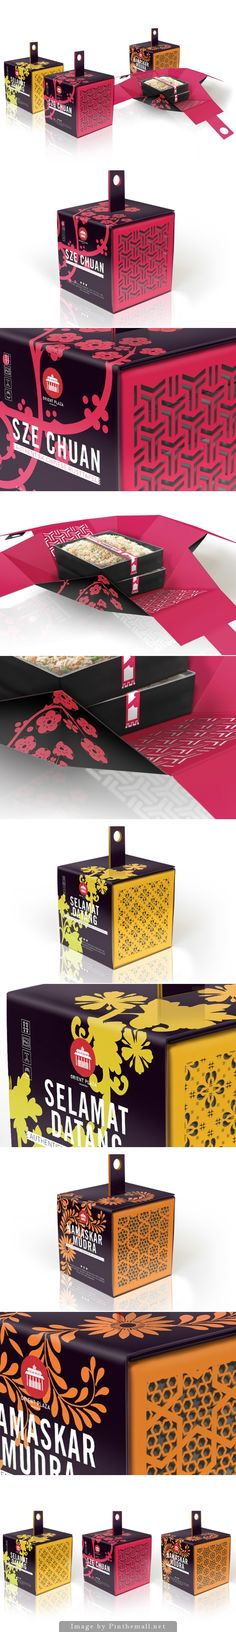 Pretty Asian inspired take-out by Reynhard Faber on curated by Packaging Diva PD created via Candle Packaging, Cool Packaging, Tea Packaging, Food Packaging Design, Beverage Packaging, Packaging Design Inspiration, Brand Packaging, Branding Design, Displays